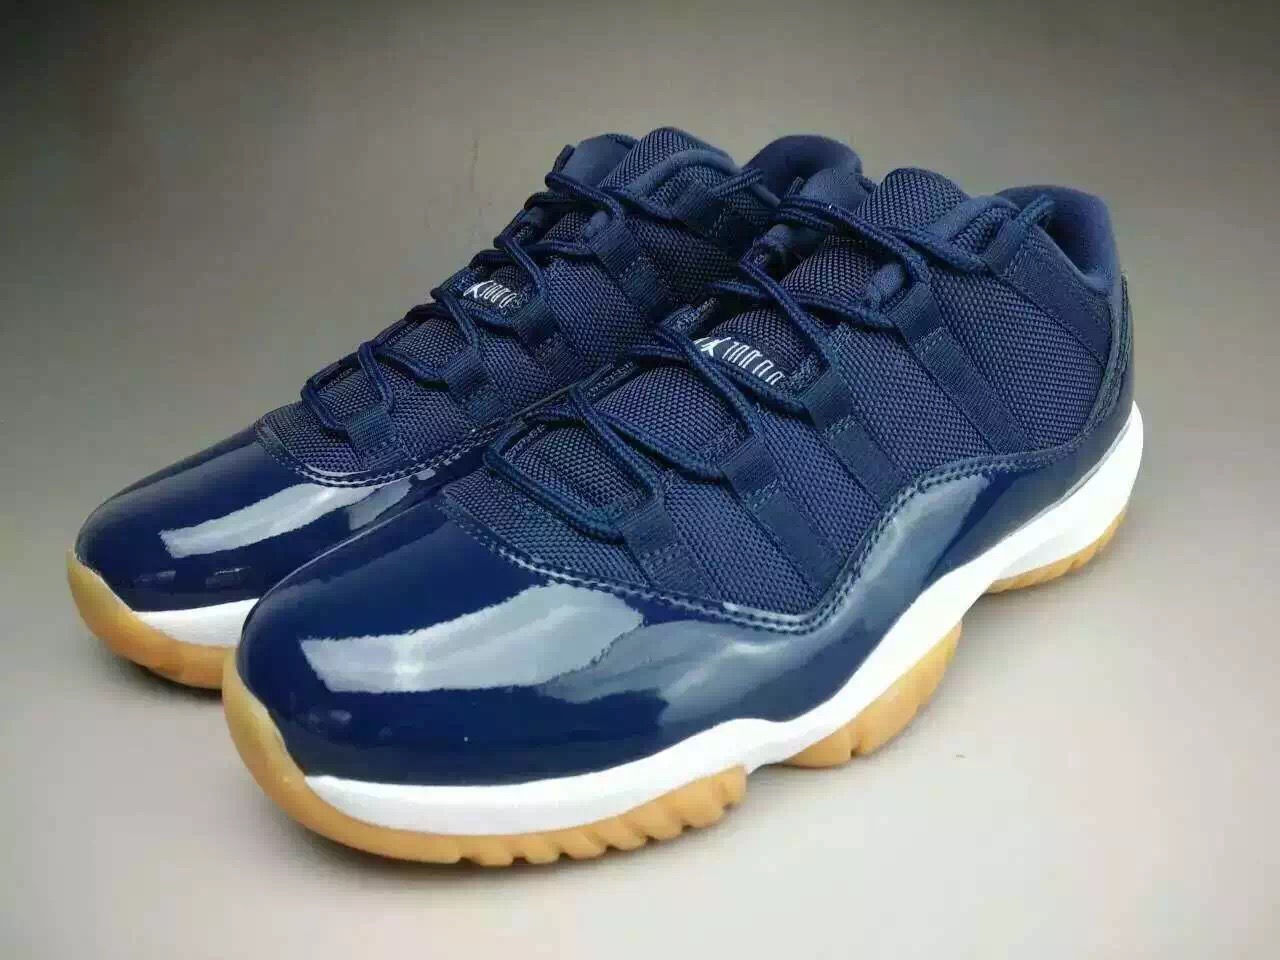 a460046fe89 Closer Look at the Air Jordan 11 Low